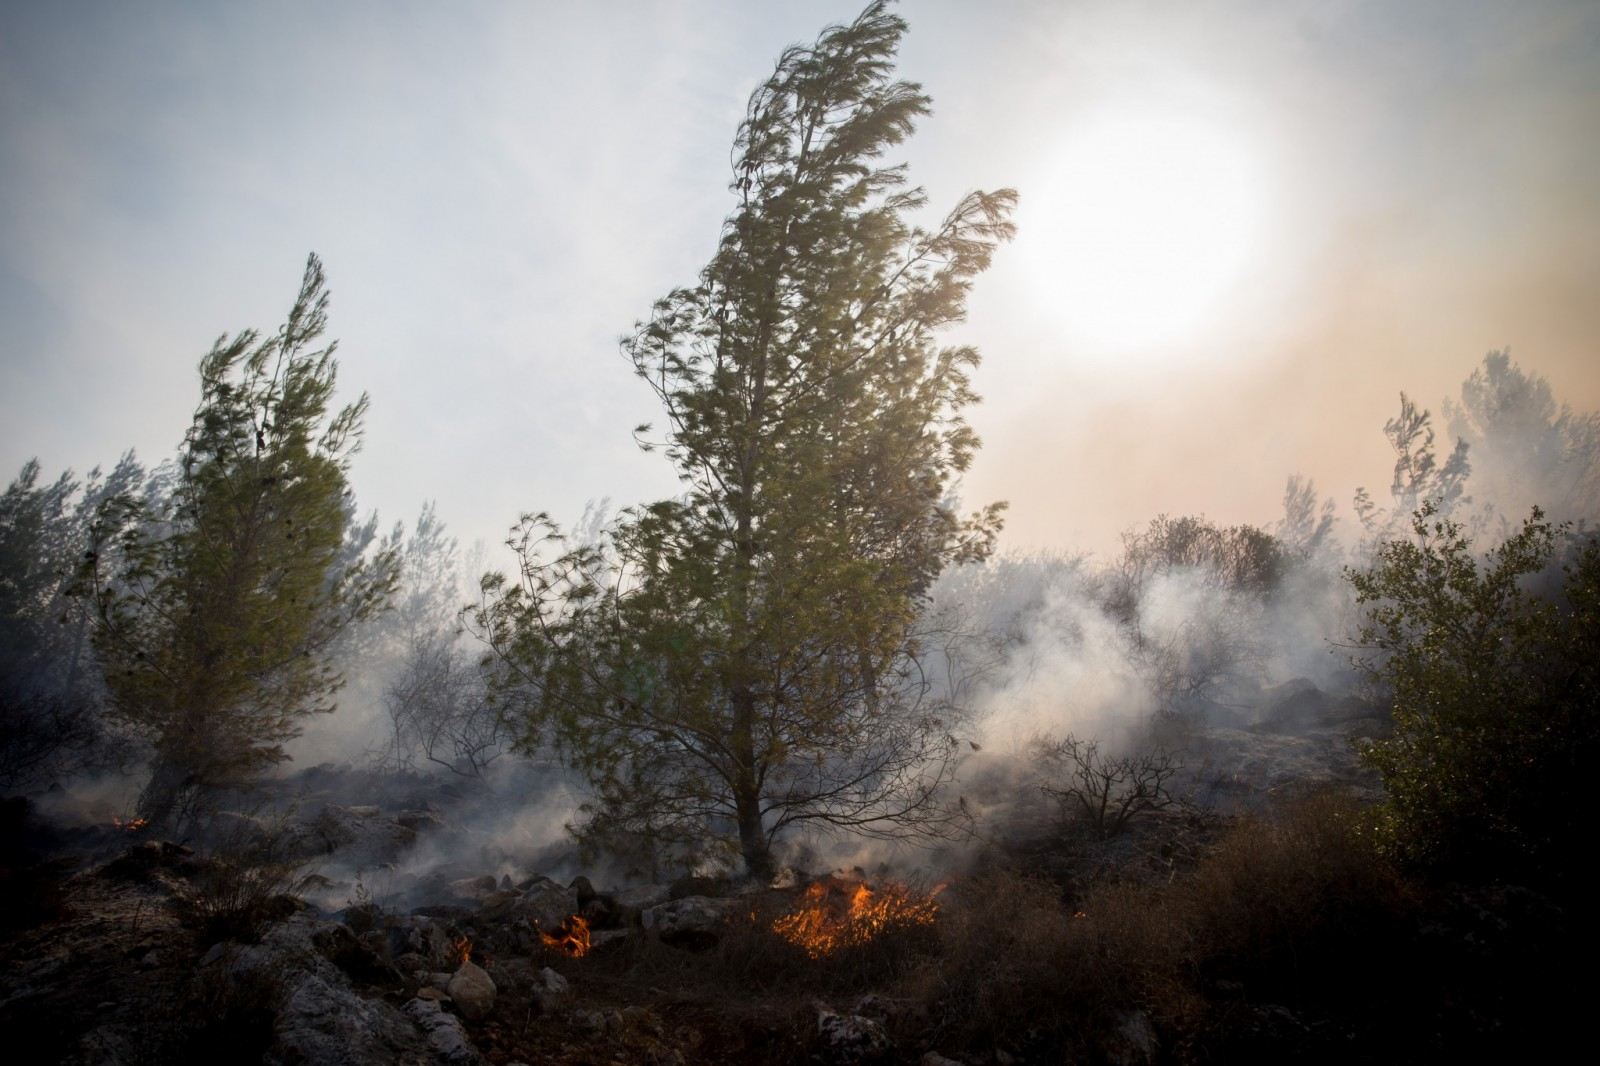 A forest fire broke out near Neve Ilan, outside of Jerusalem, on November 24, 2016. Photo by Yonatan Sindel/FLASH90